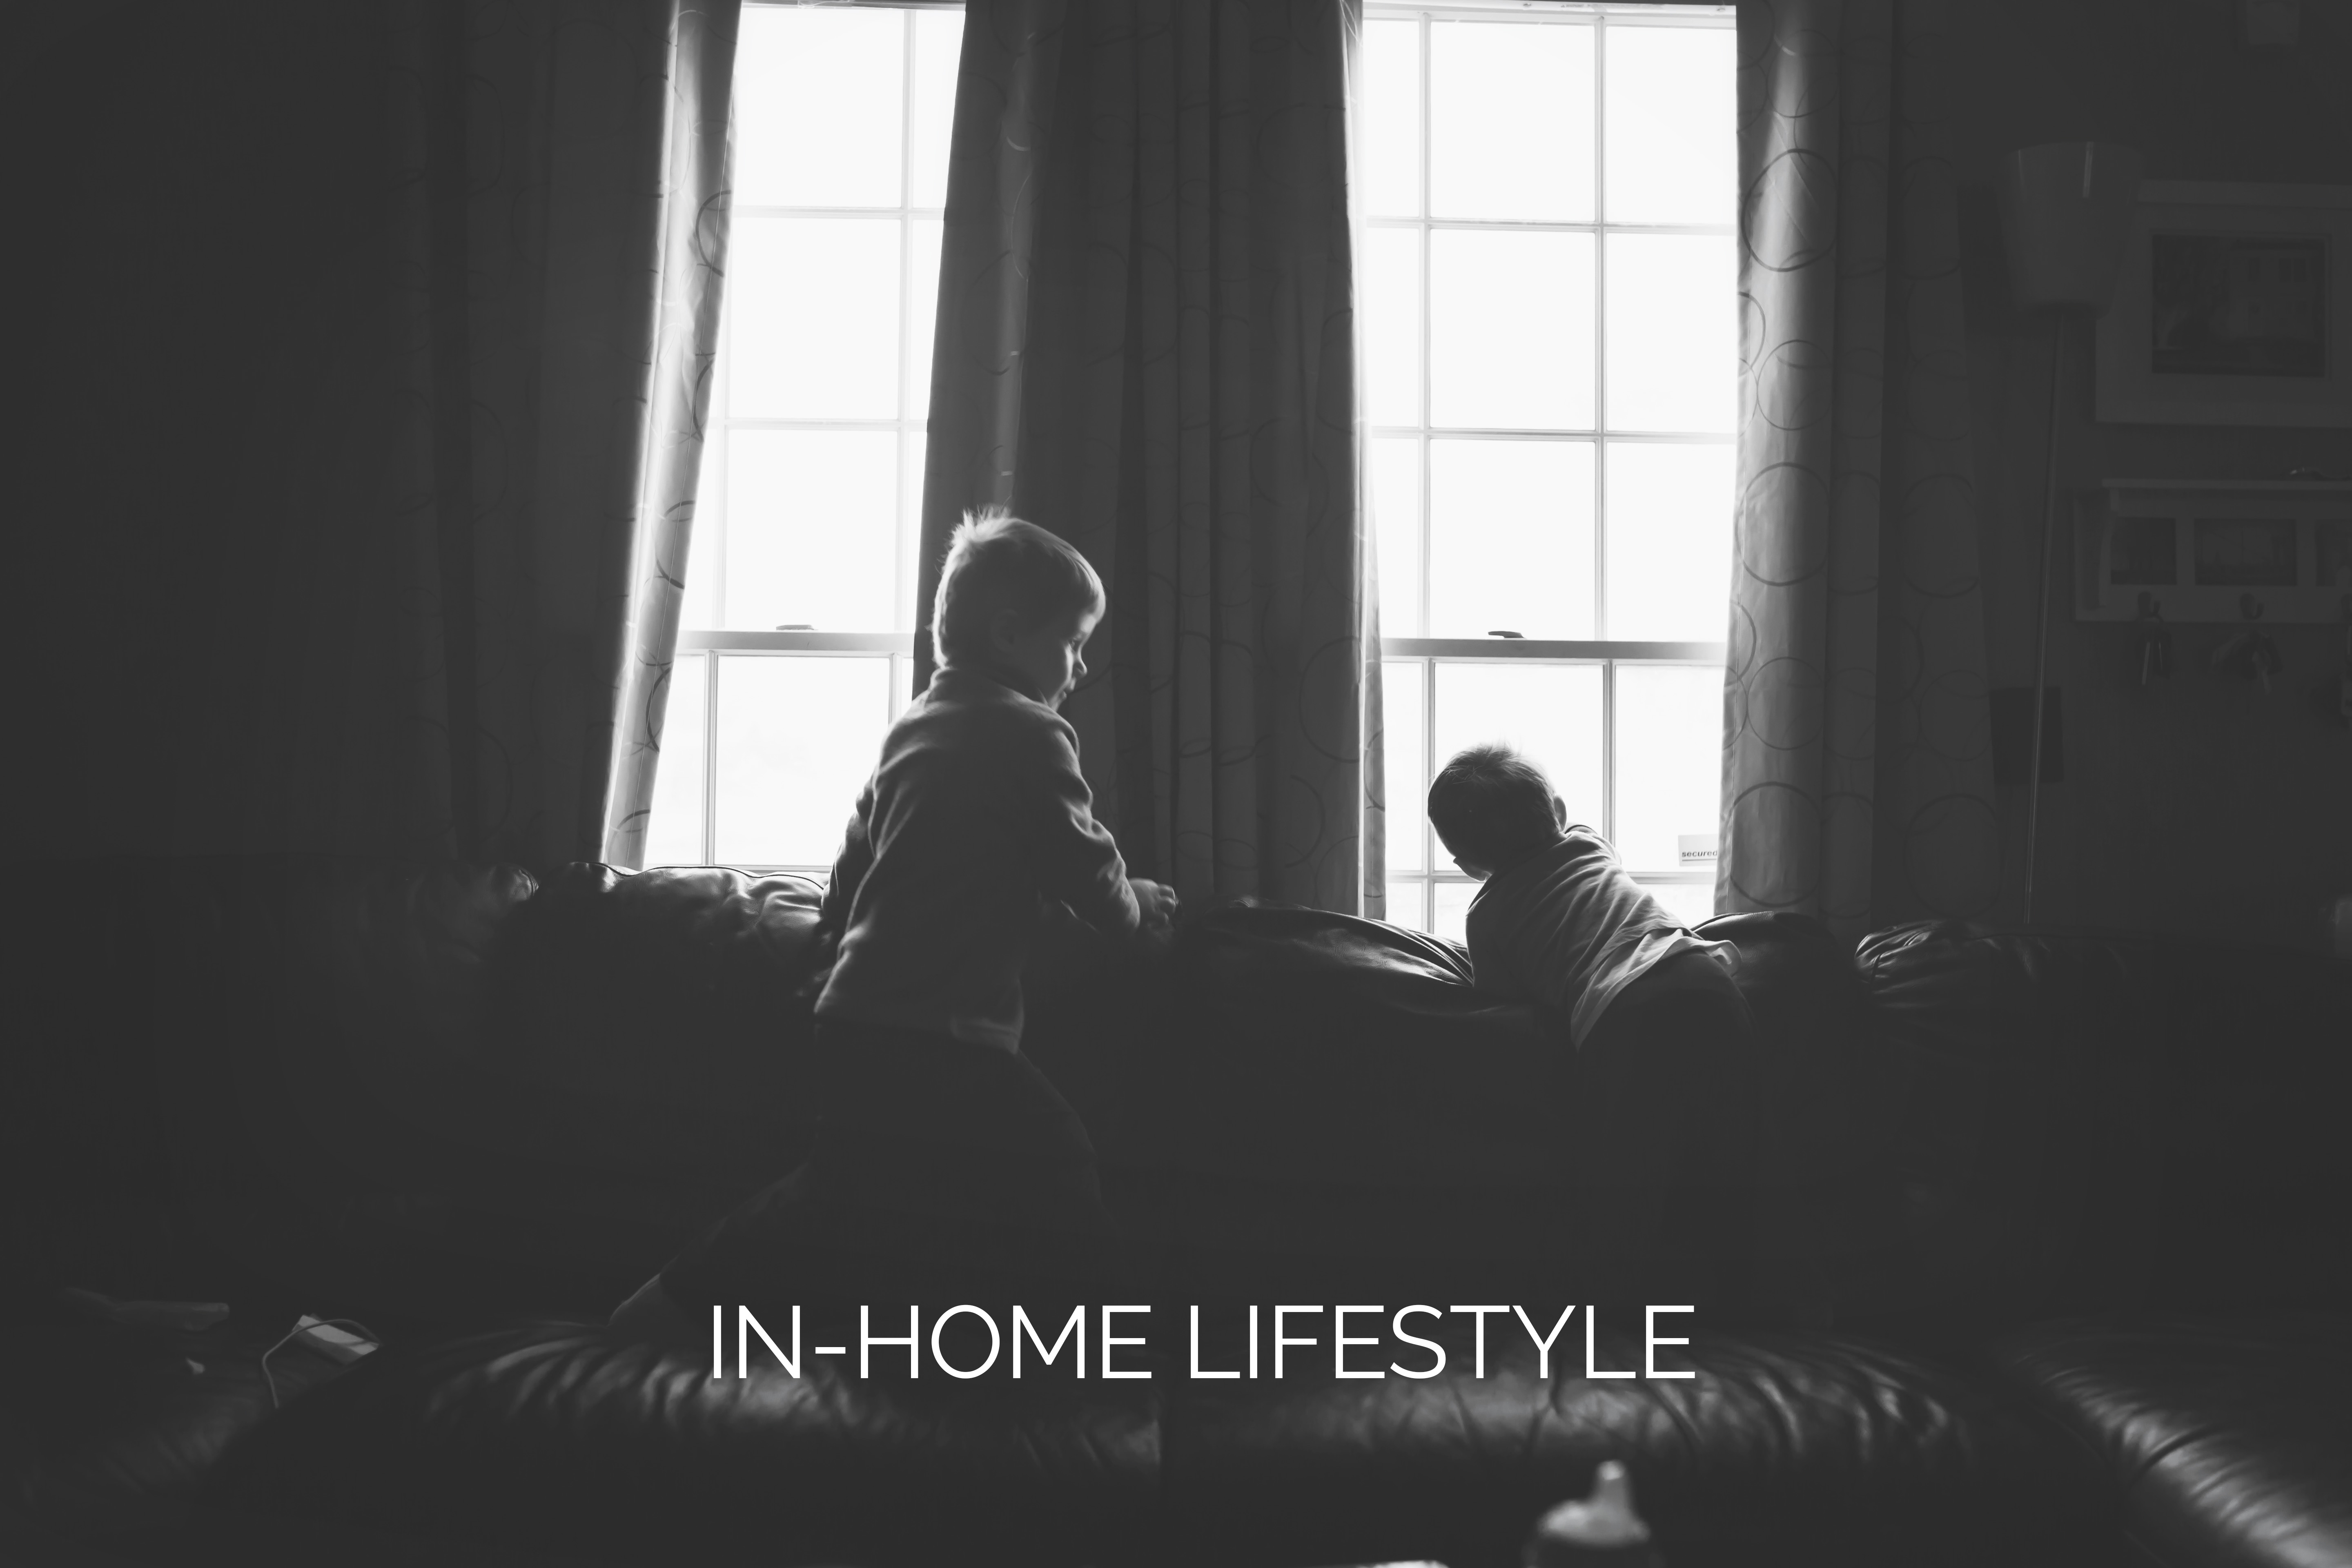 in-home lifestyle